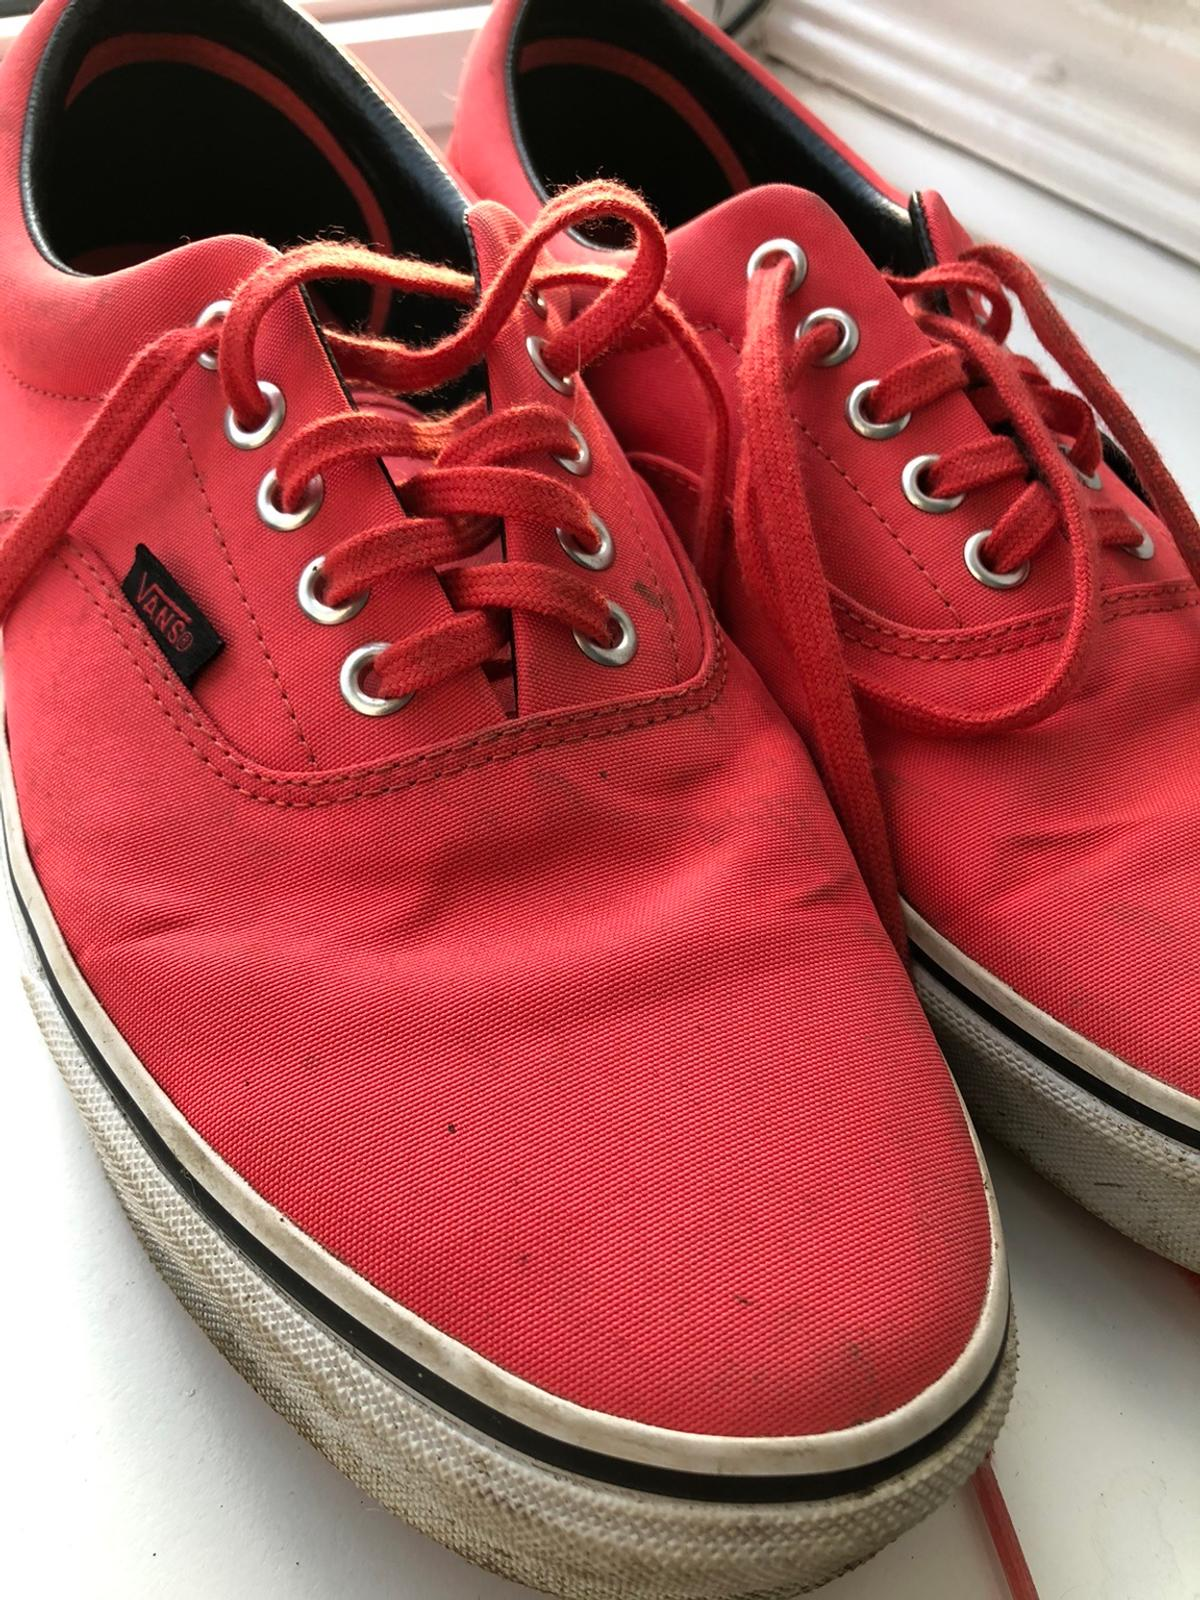 Canvas vans salmon pink size 10.5 US11. Used but in good condition as hardly worn. Plenty of wear left in them. Buyer to collect.